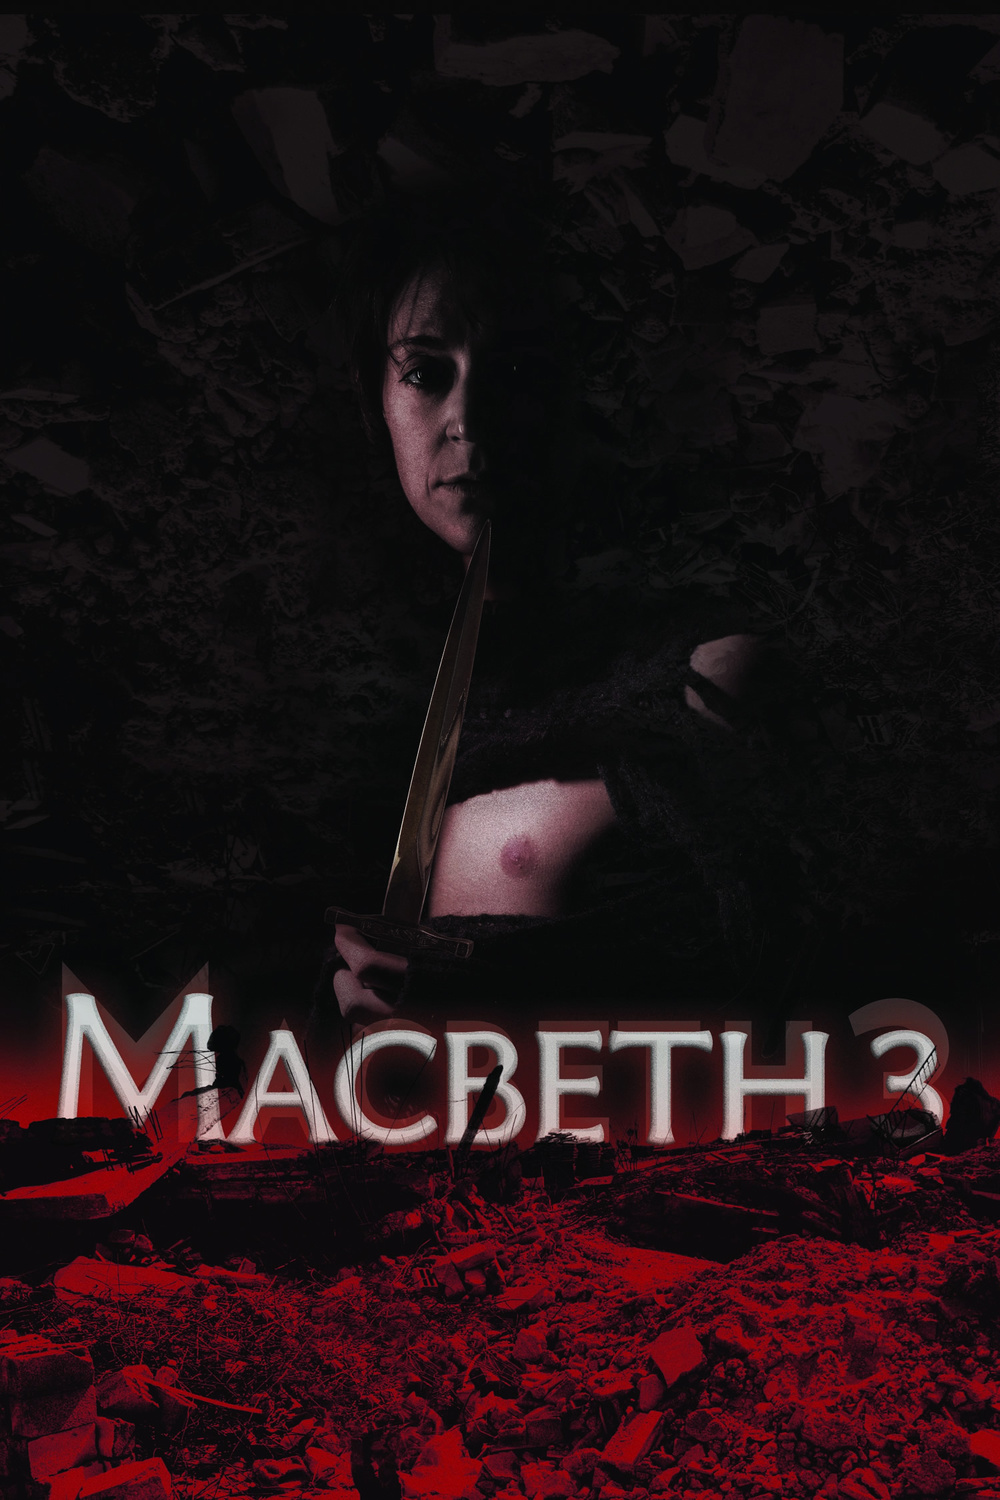 Macbeth3-Composite-sRGB.jpg